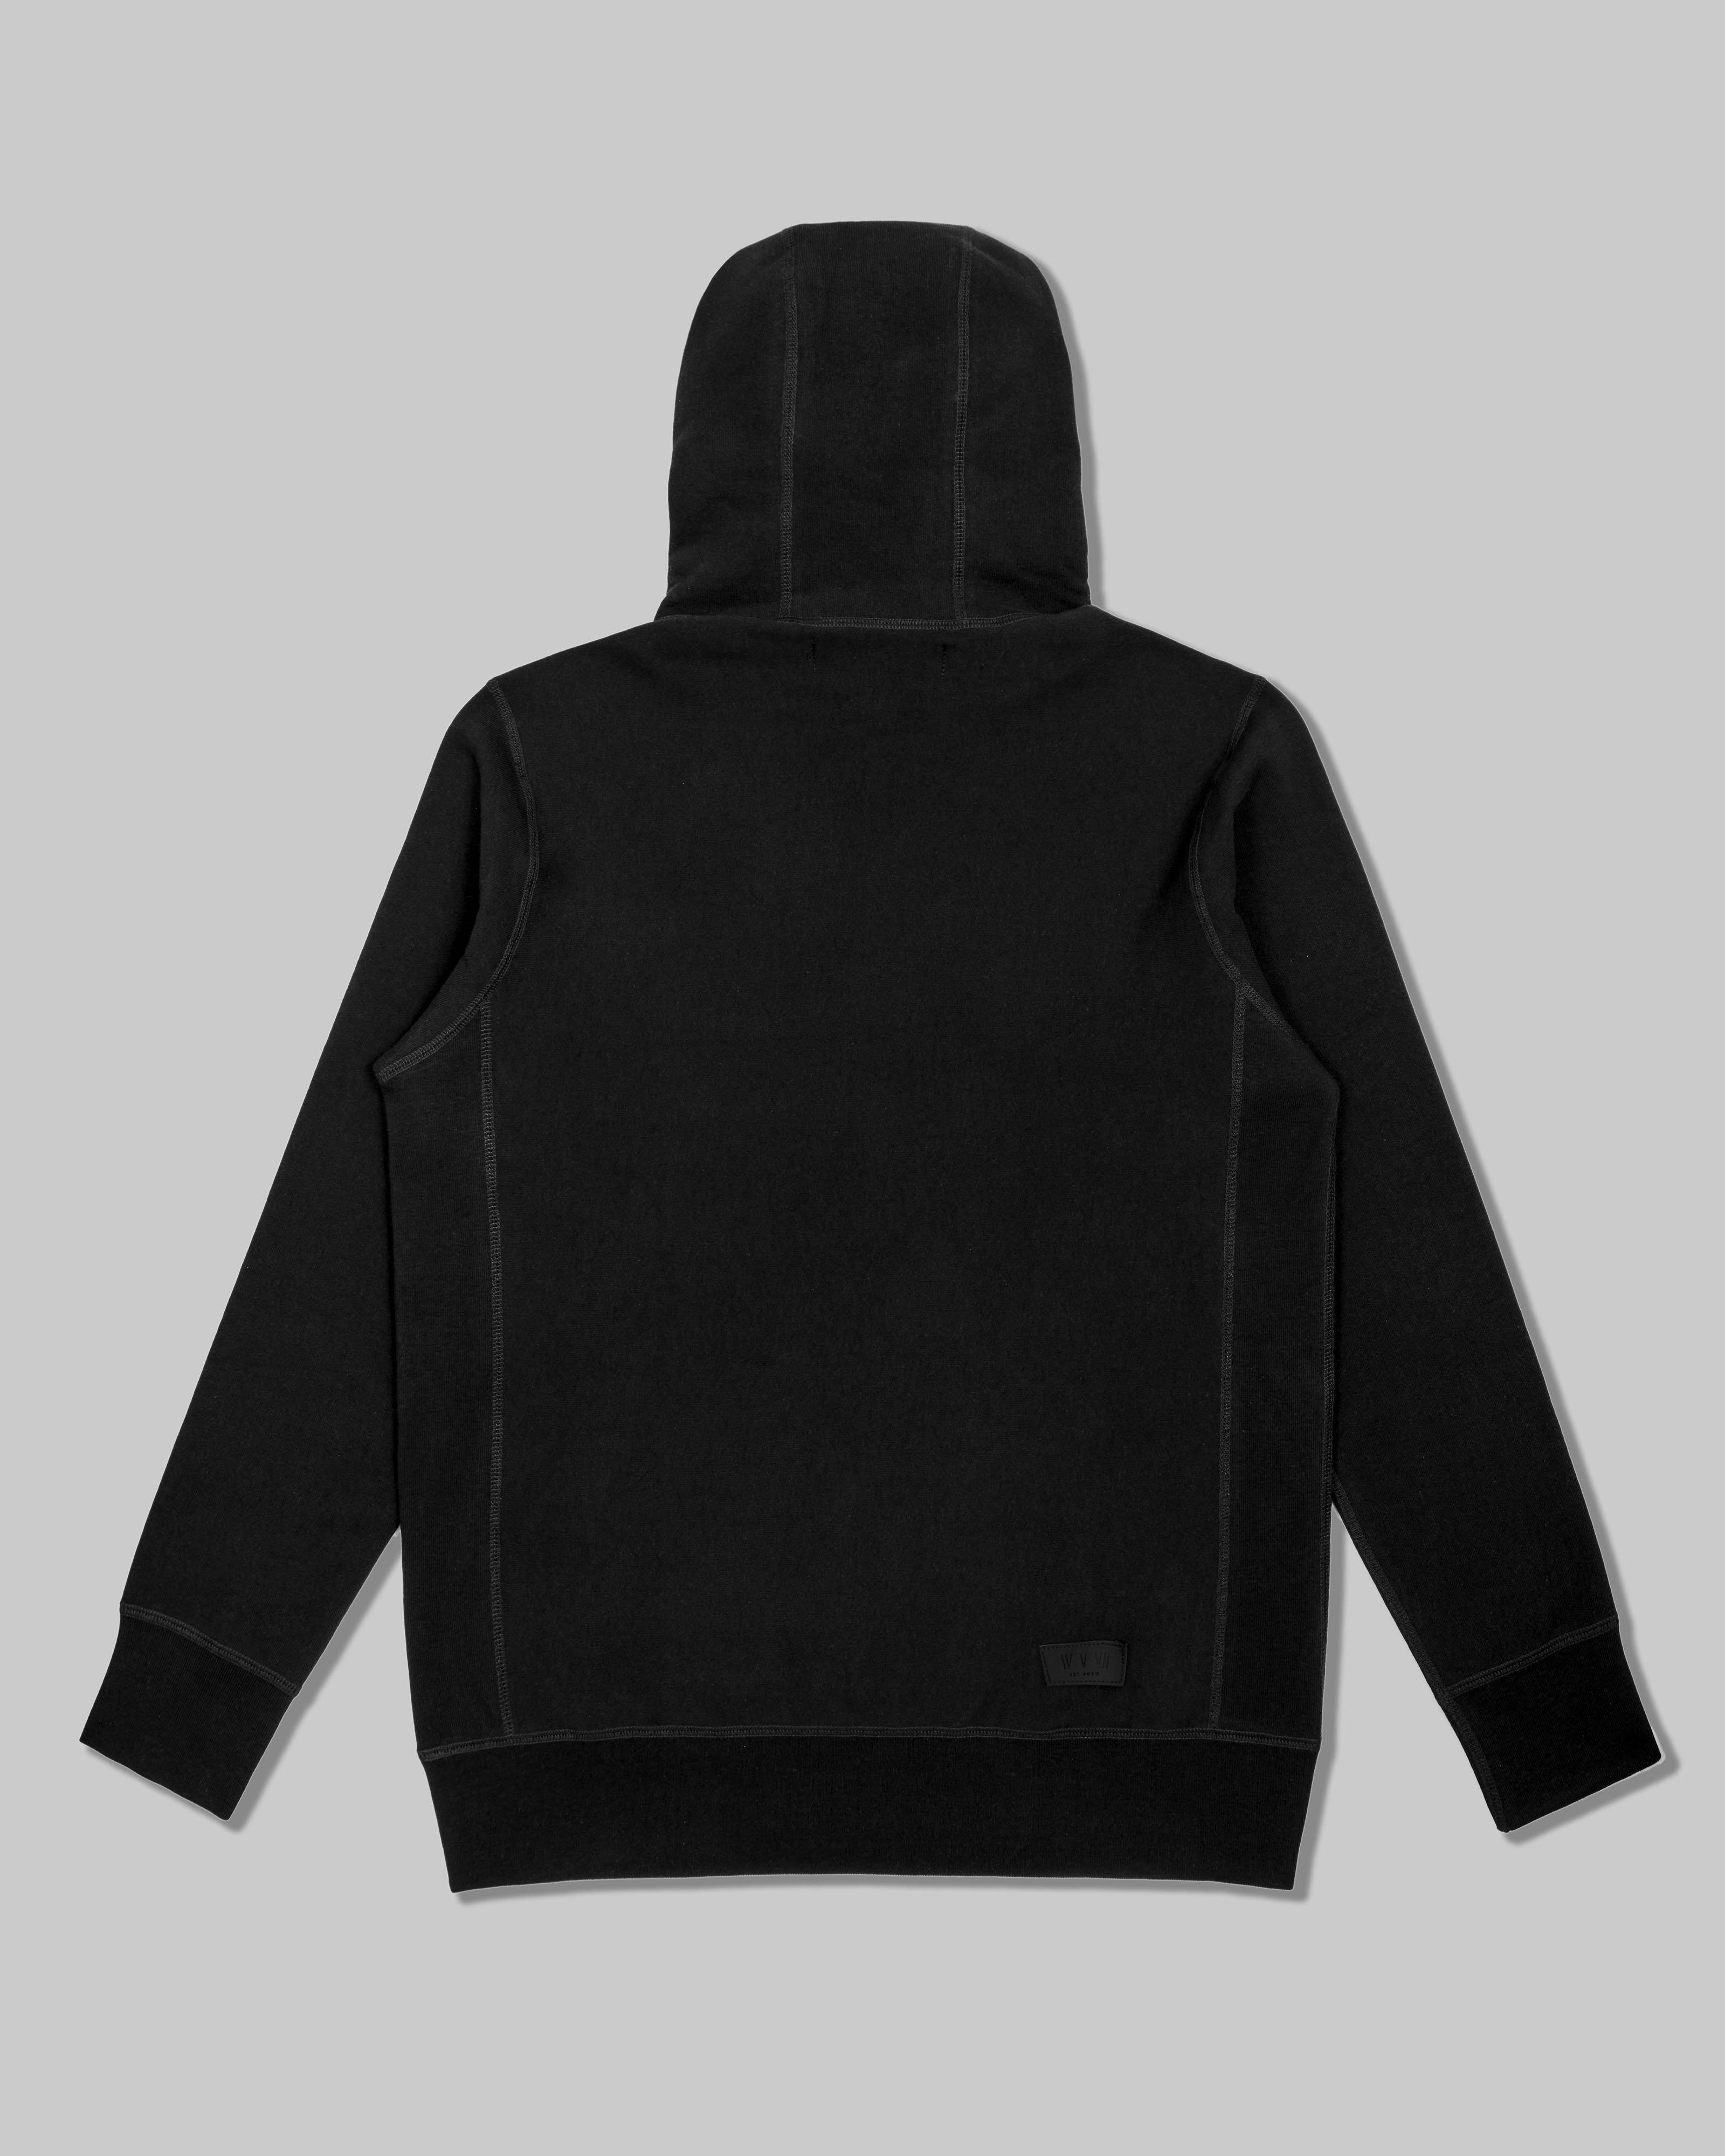 Hoodie in Heavyweight American Cotton